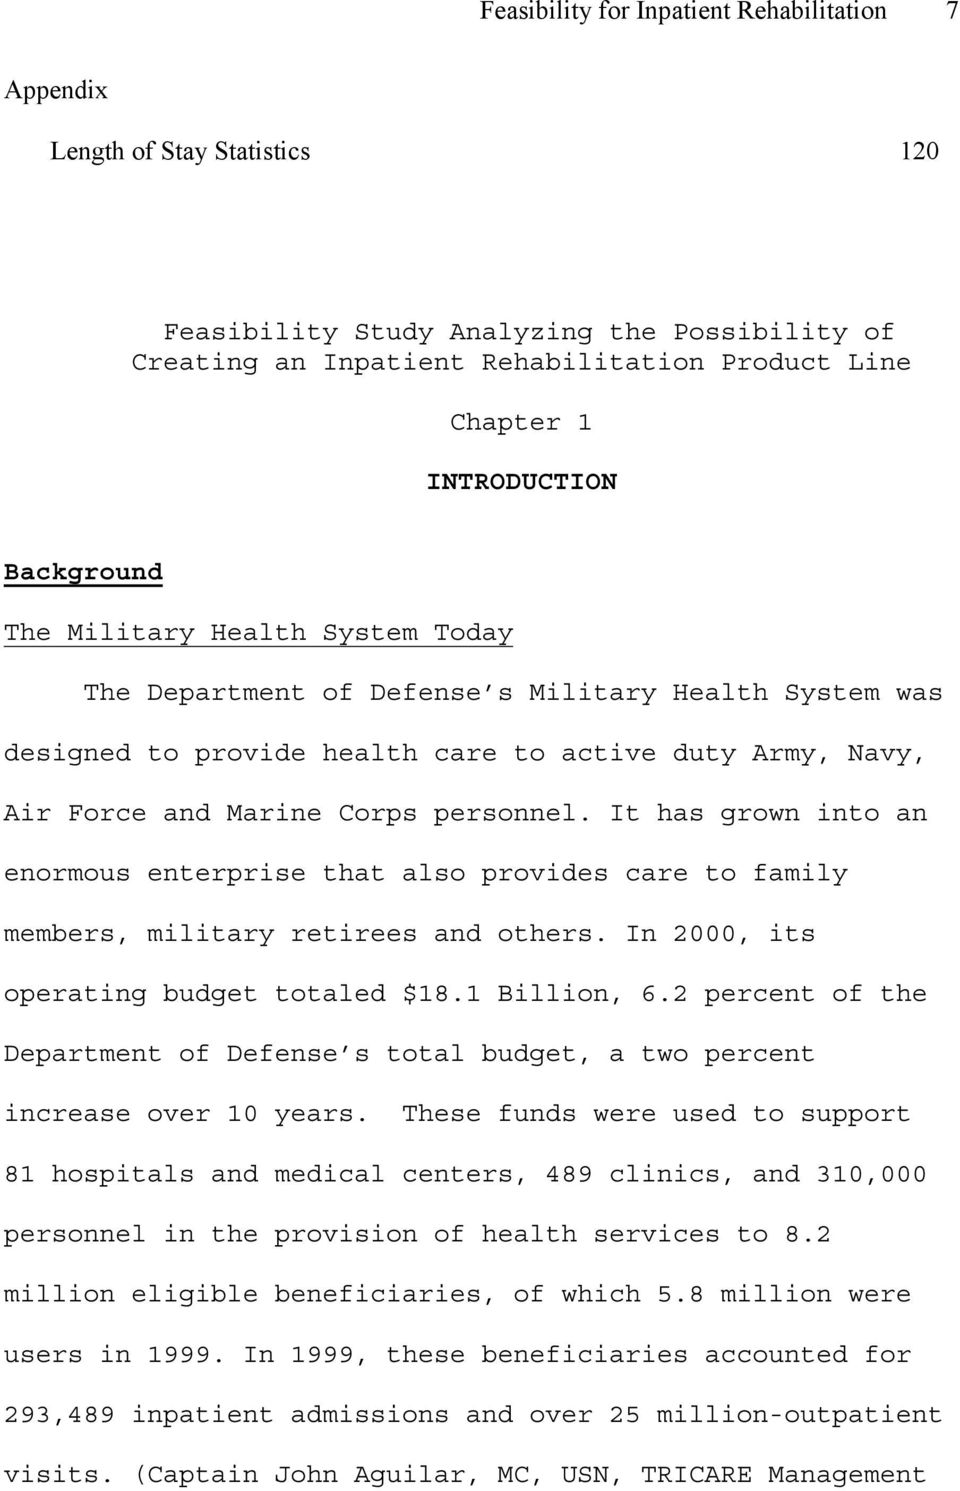 personnel. It has grown into an enormous enterprise that also provides care to family members, military retirees and others. In 2000, its operating budget totaled $18.1 Billion, 6.